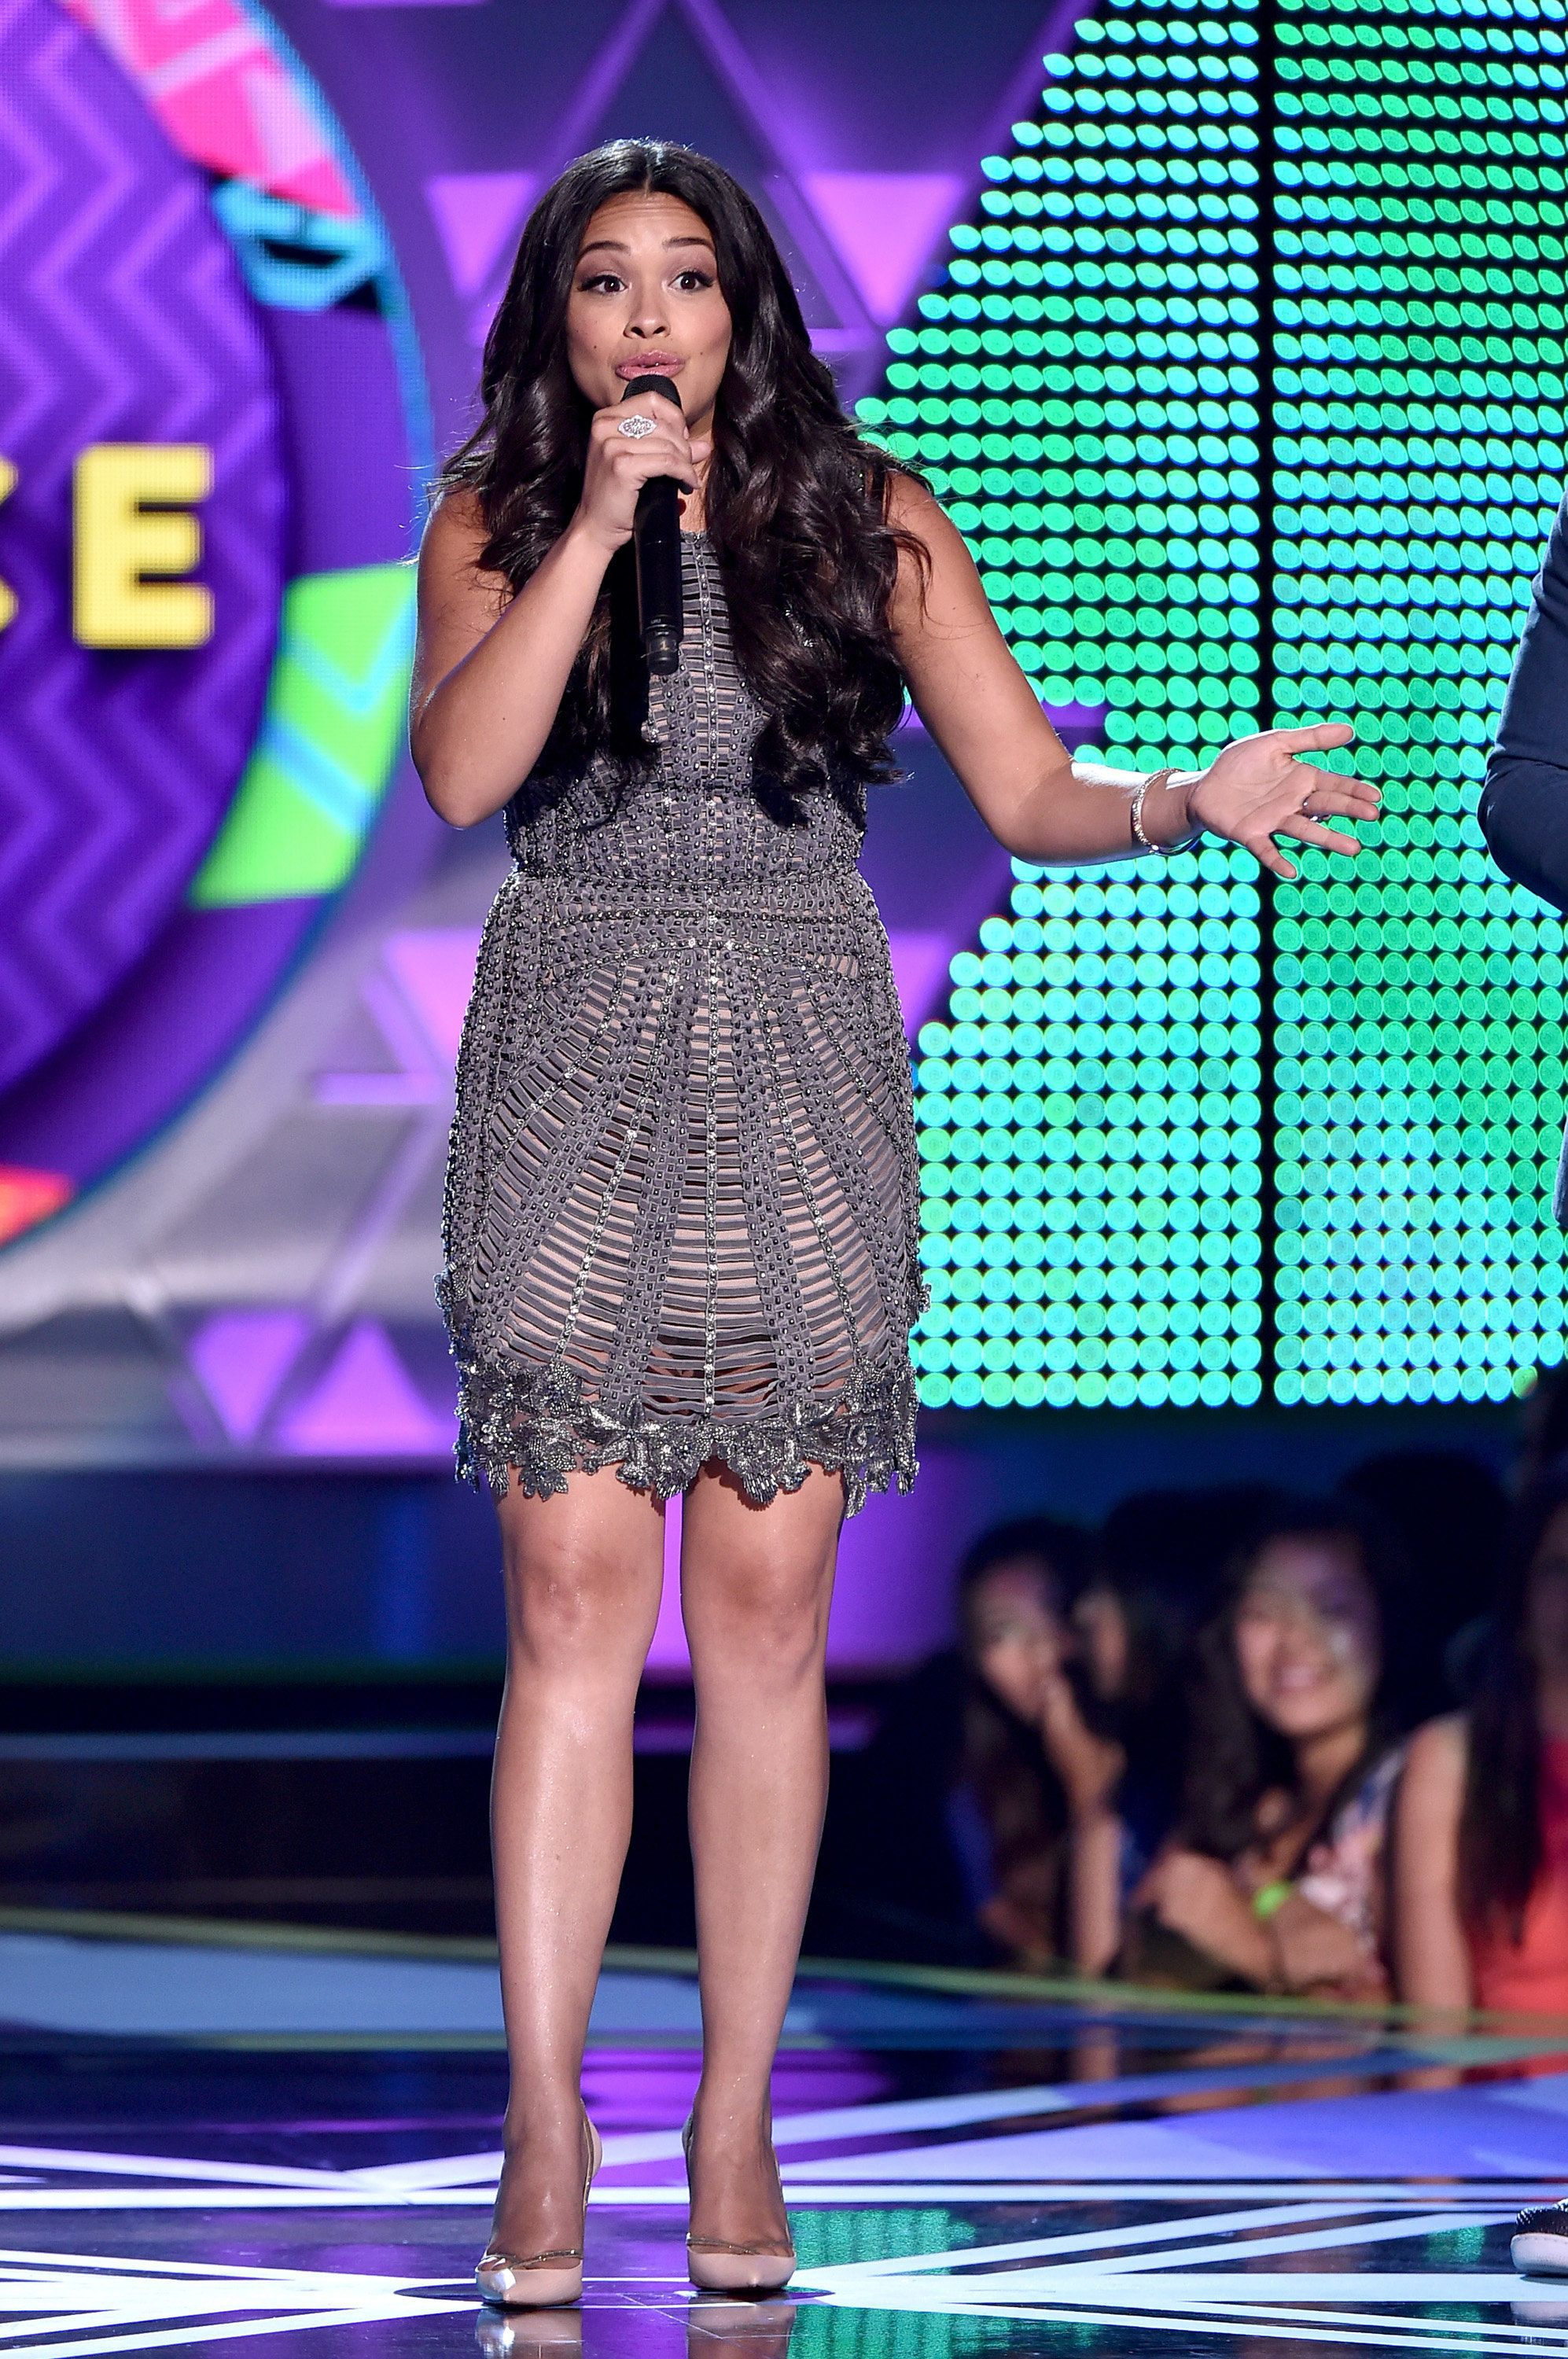 LOS ANGELES, CA - AUGUST 16: Co-host Gina Rodriguez speaks onstage during the Teen Choice Awards 2015 at the USC Galen Center on August 16, 2015 in Los Angeles, California.  (Photo by Kevin Winter/Getty Images)